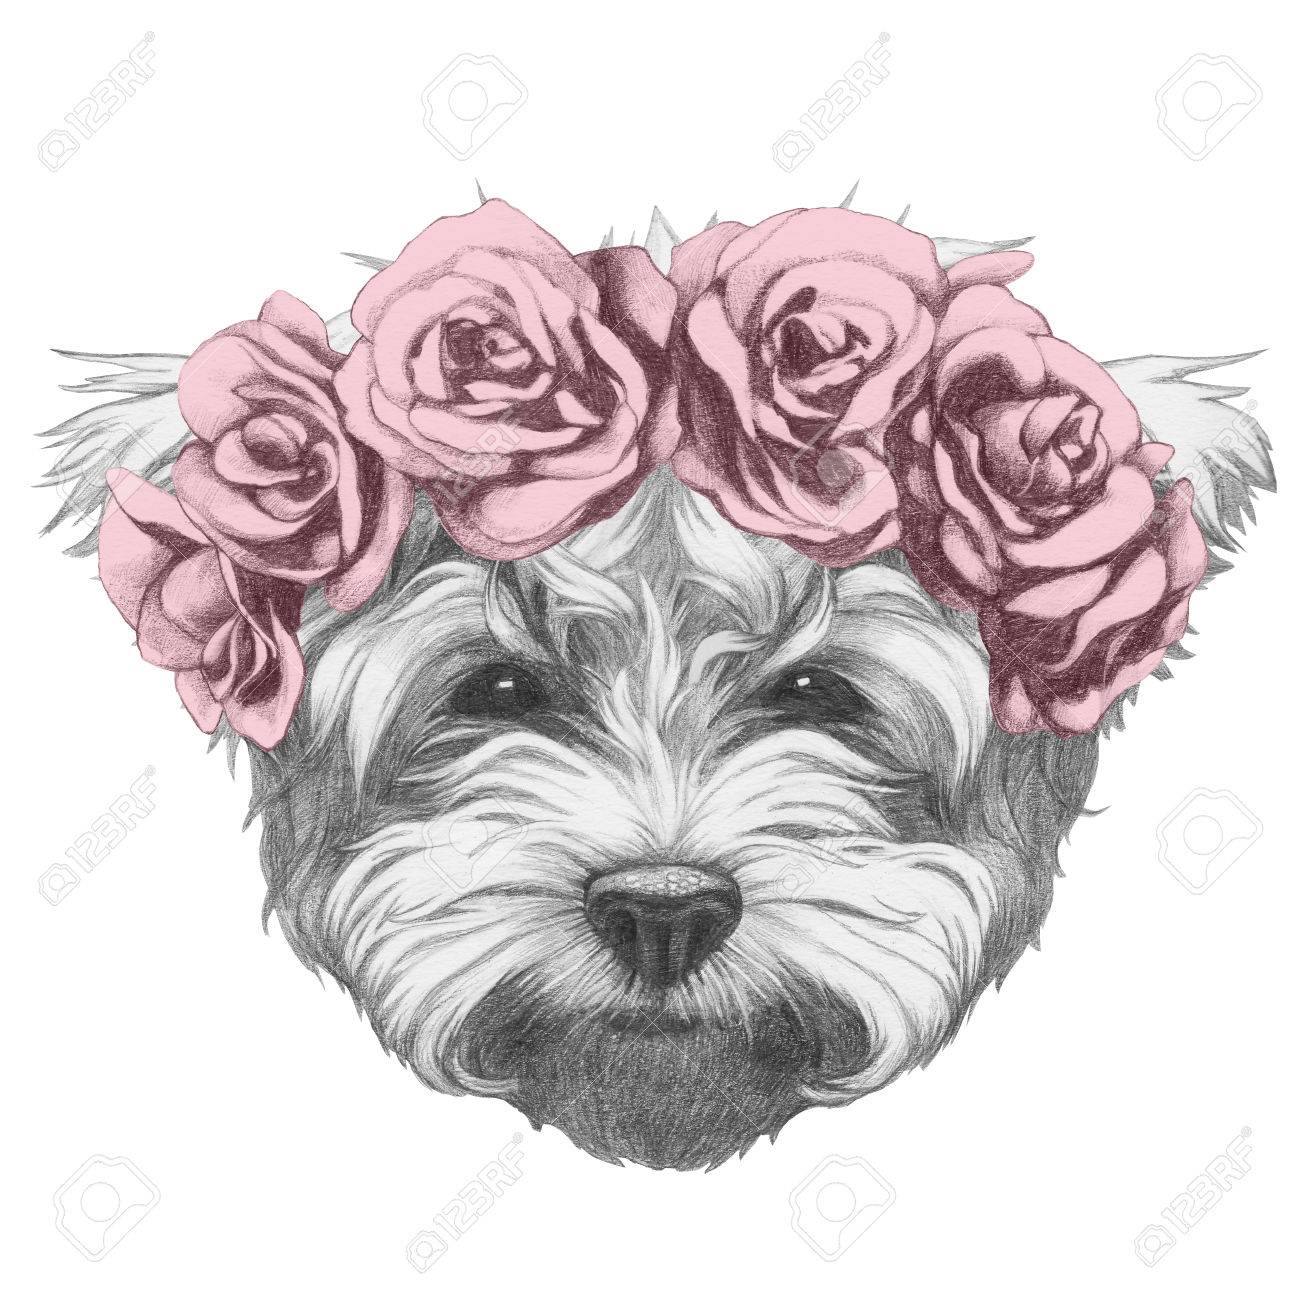 1300x1300 Original Drawing Of Maltese Poodle With Floral Head Wreath